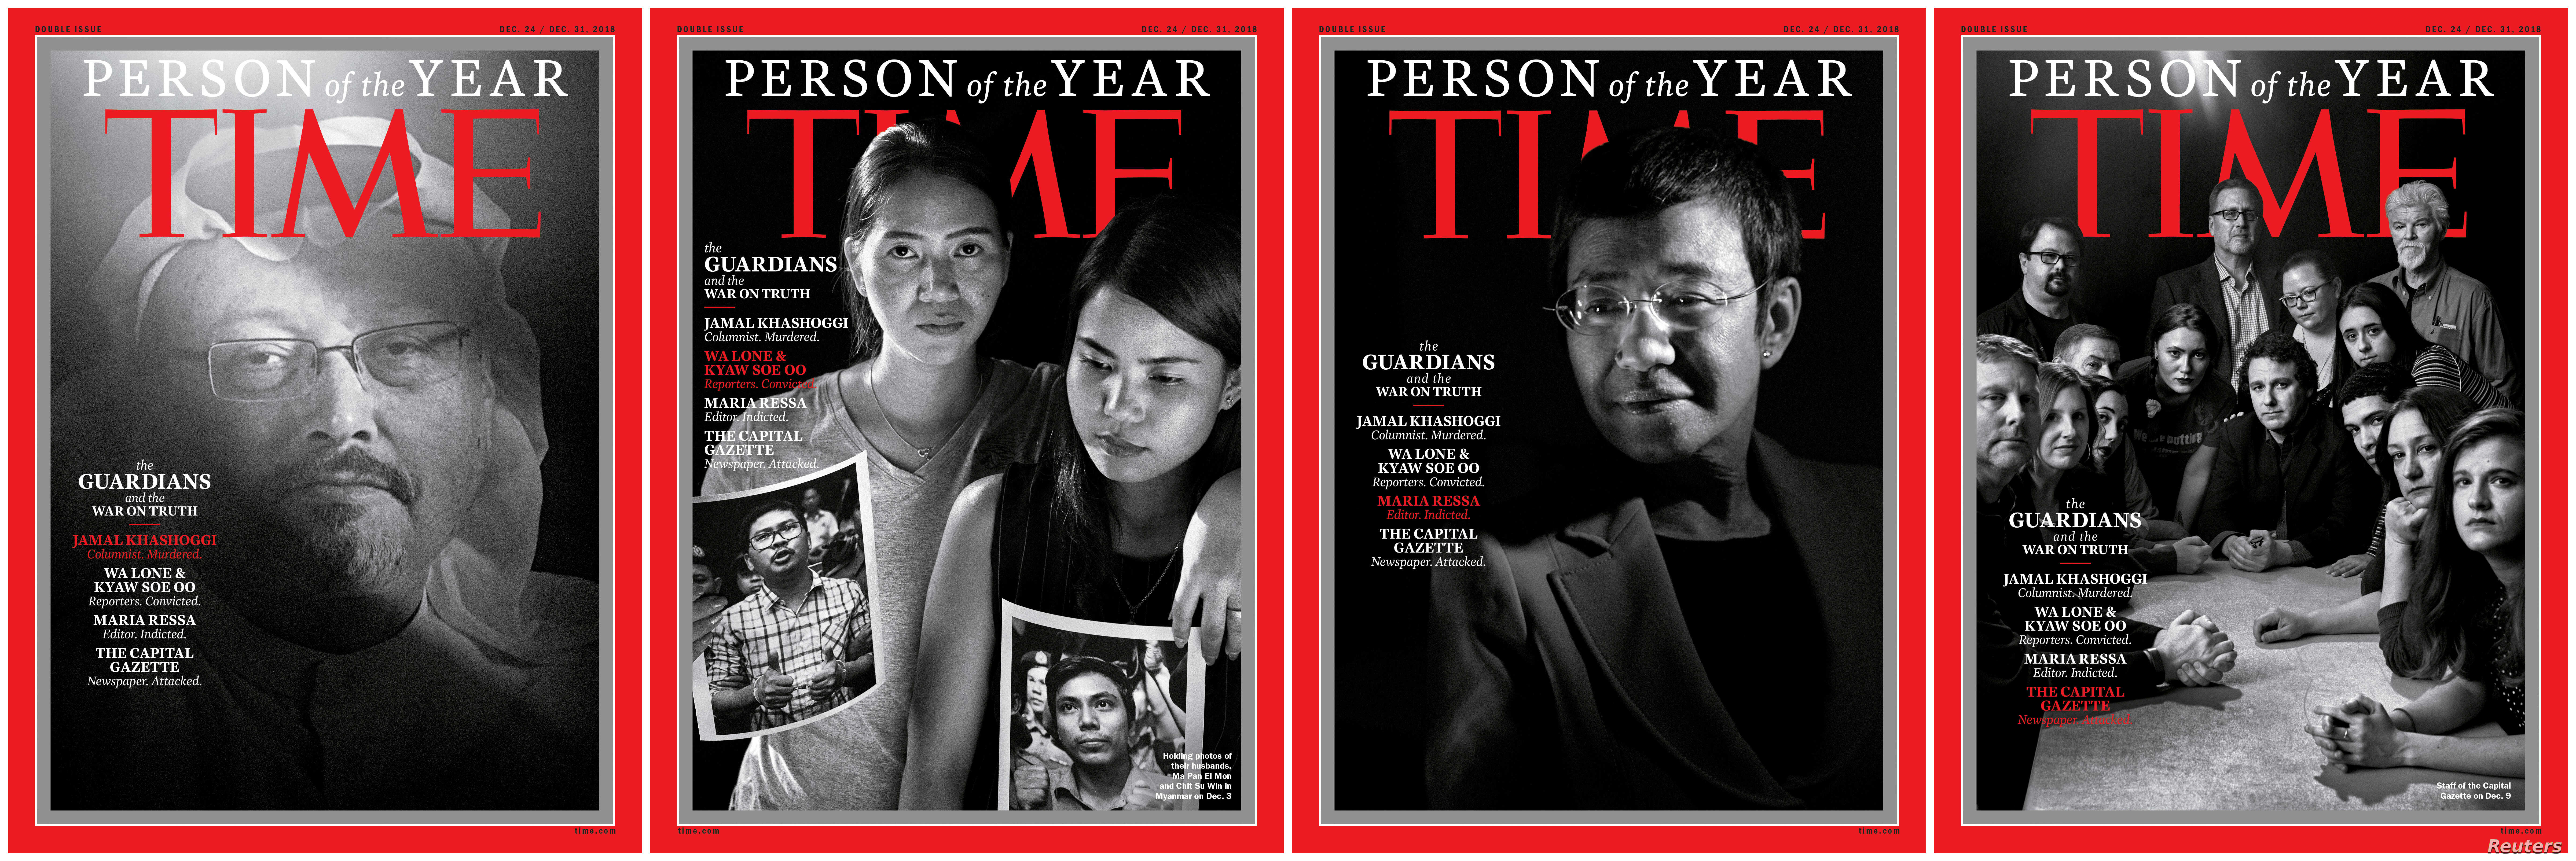 L-R: Saudi journalist Jamal Khashoggi, Ma Pan Ei Mon and Chit Su Win holding photos of their husbands Reuters journalists Wa Lone and Kyaw Soe Oo, Maria Ressa, a Filipina journalist, and the staff of the Capital Gazette newspaper, named TIME's Person...